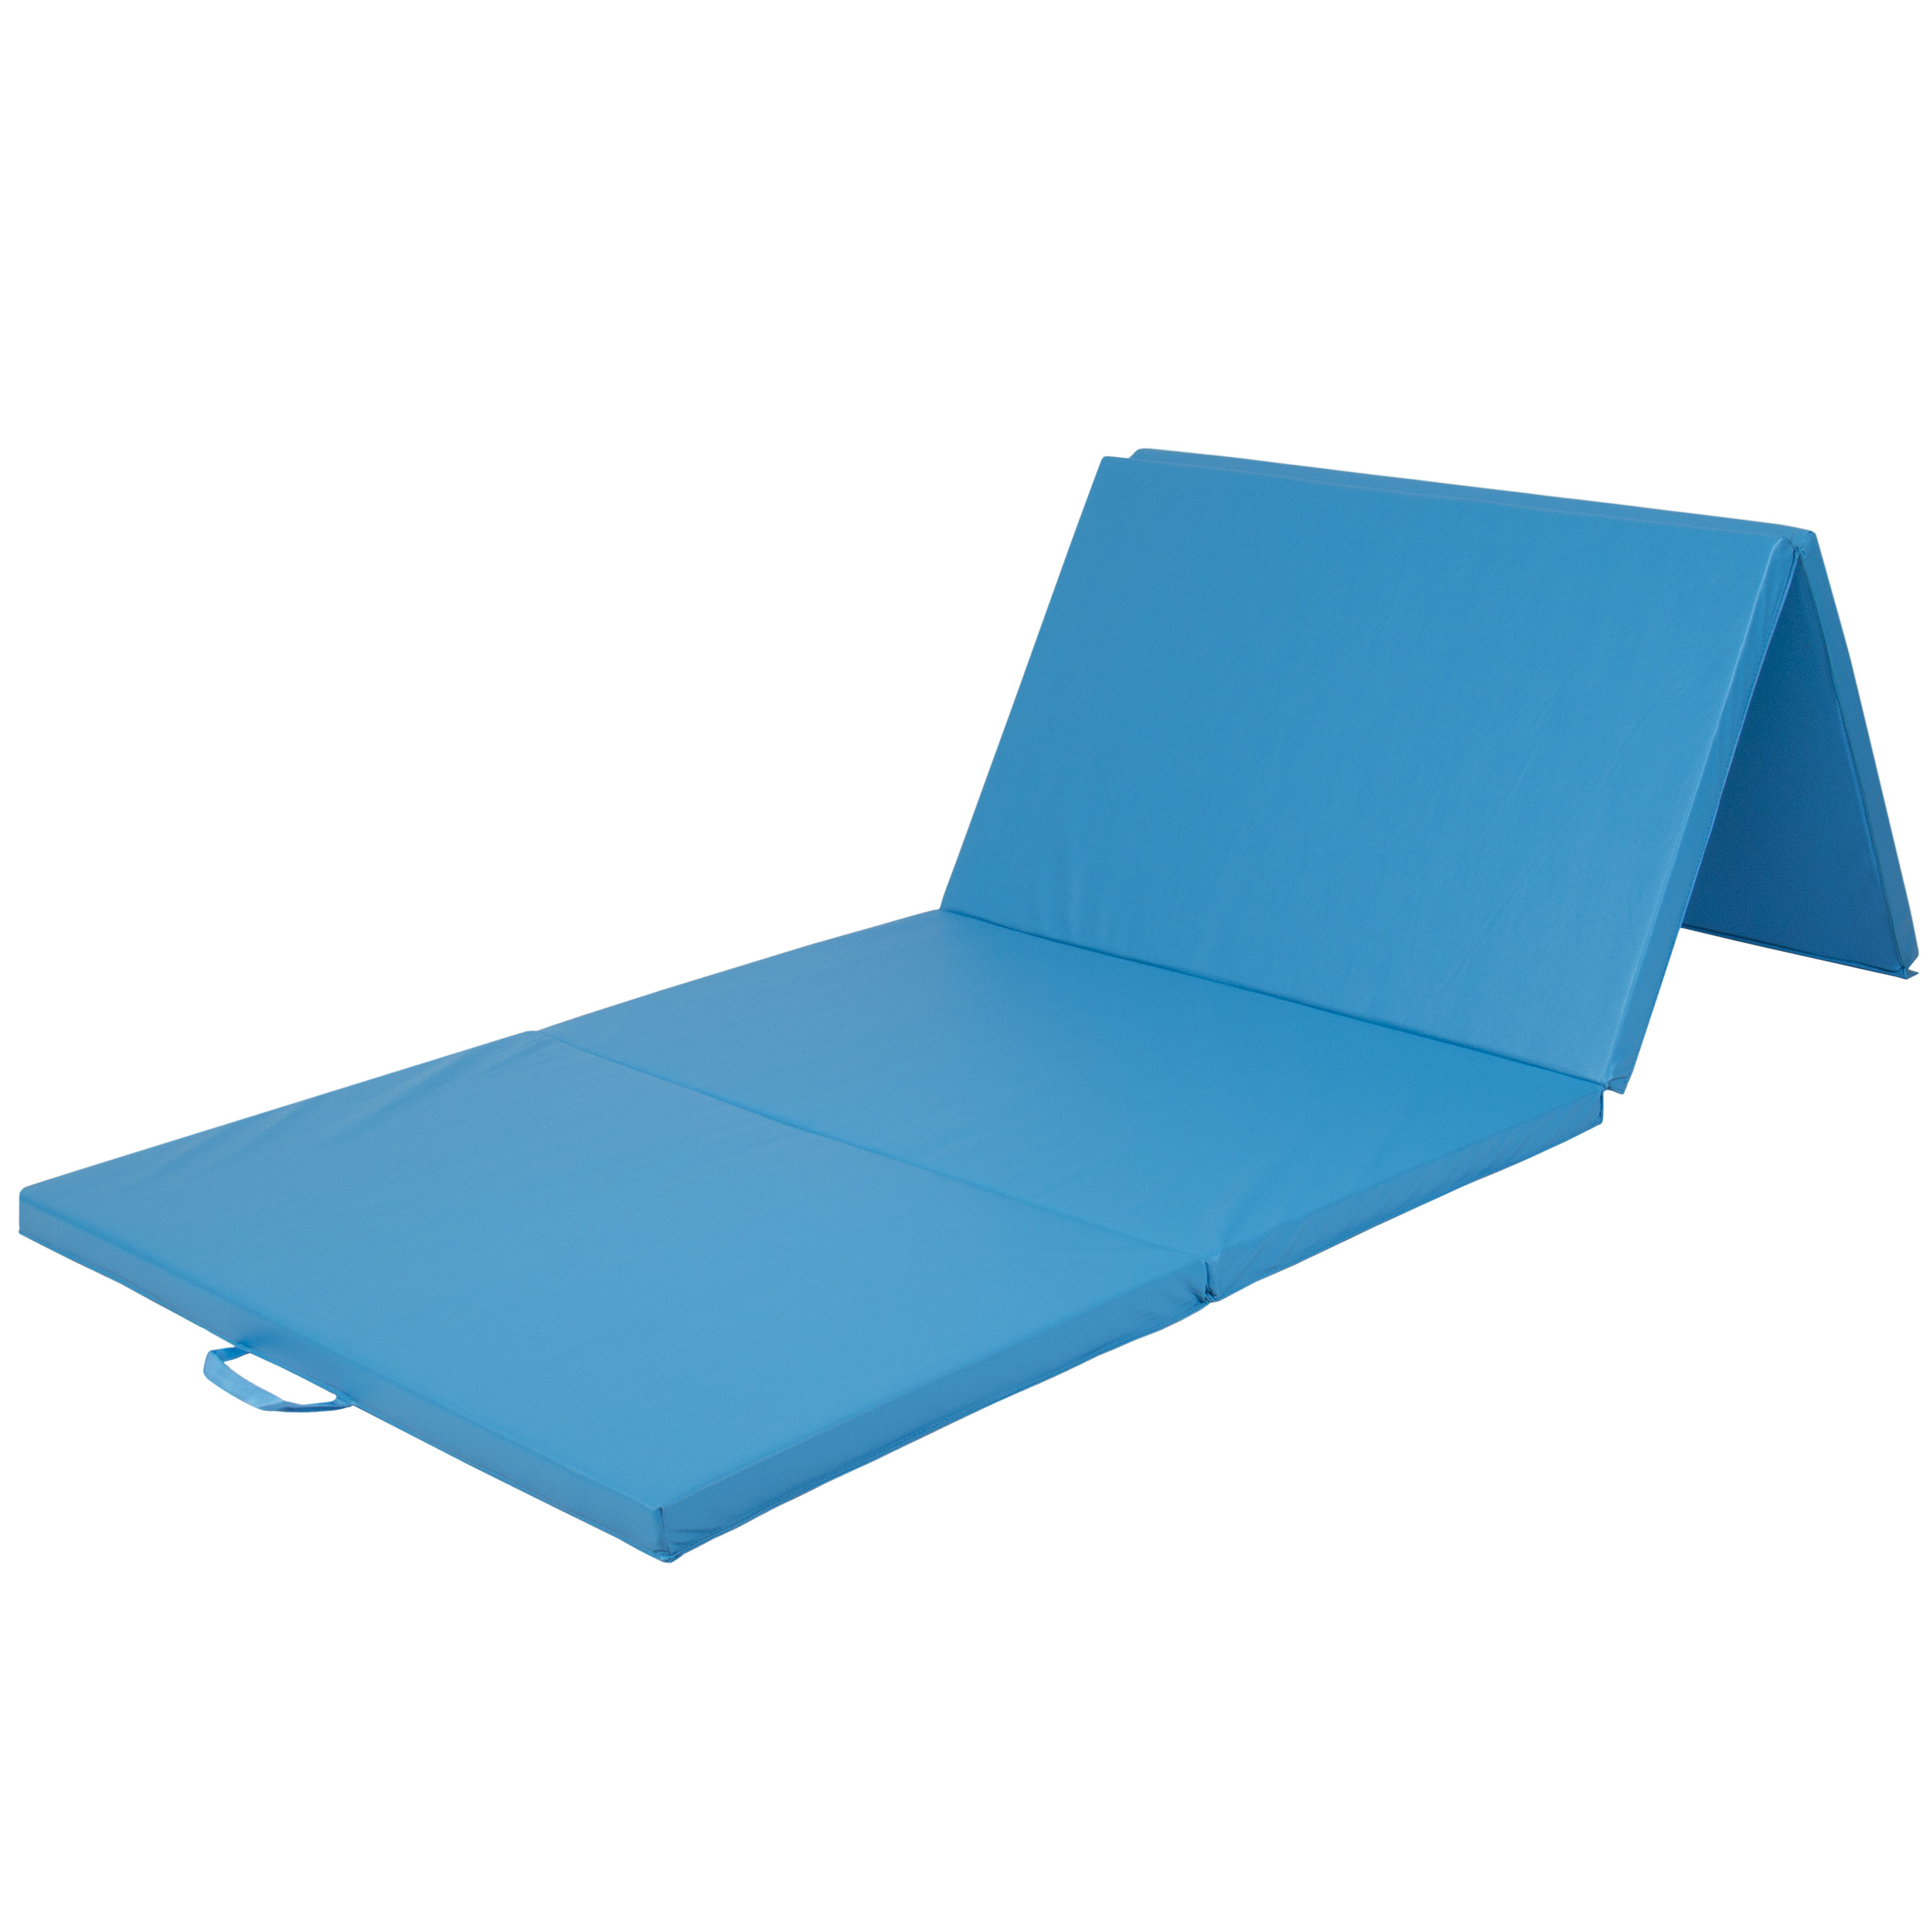 in blue tumbling full click to mats image view royal mat standard mancino stock x